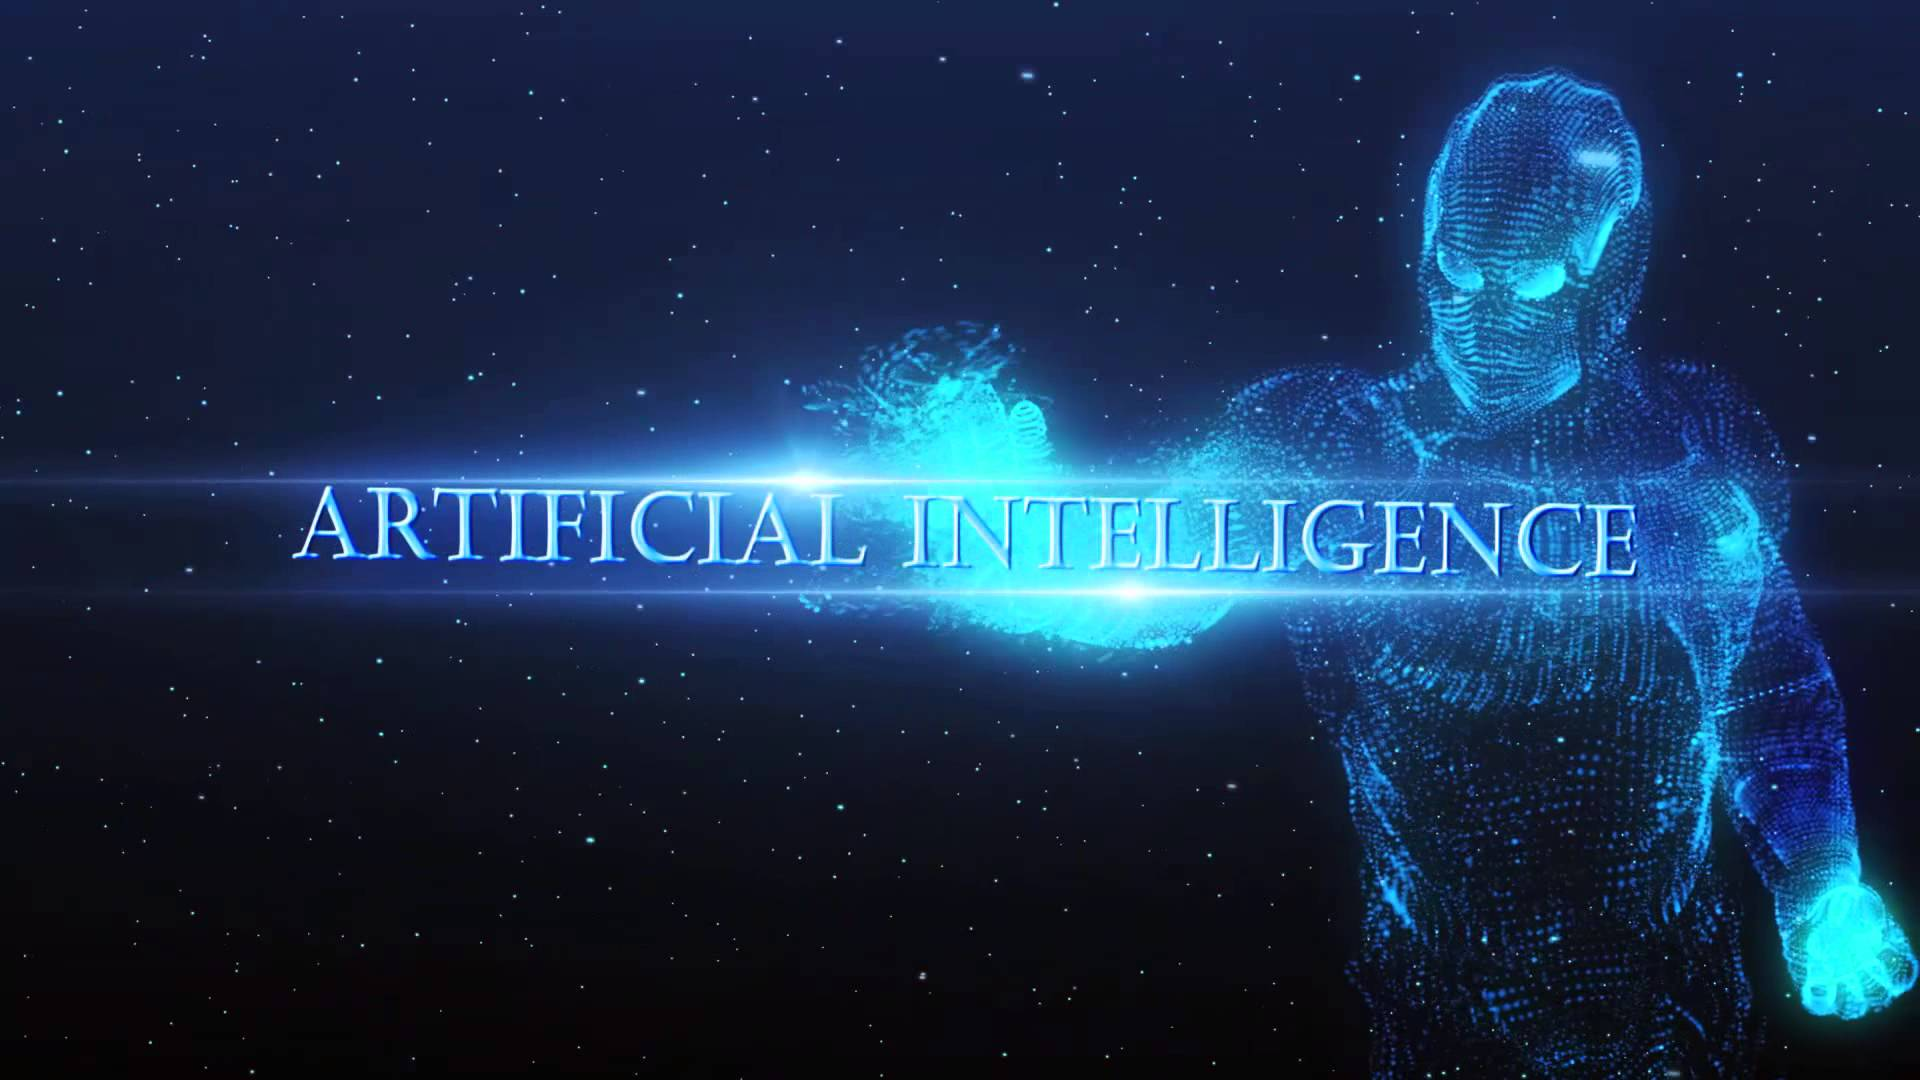 THE DAWN OF ARTIFICIAL INTELLIGENCE